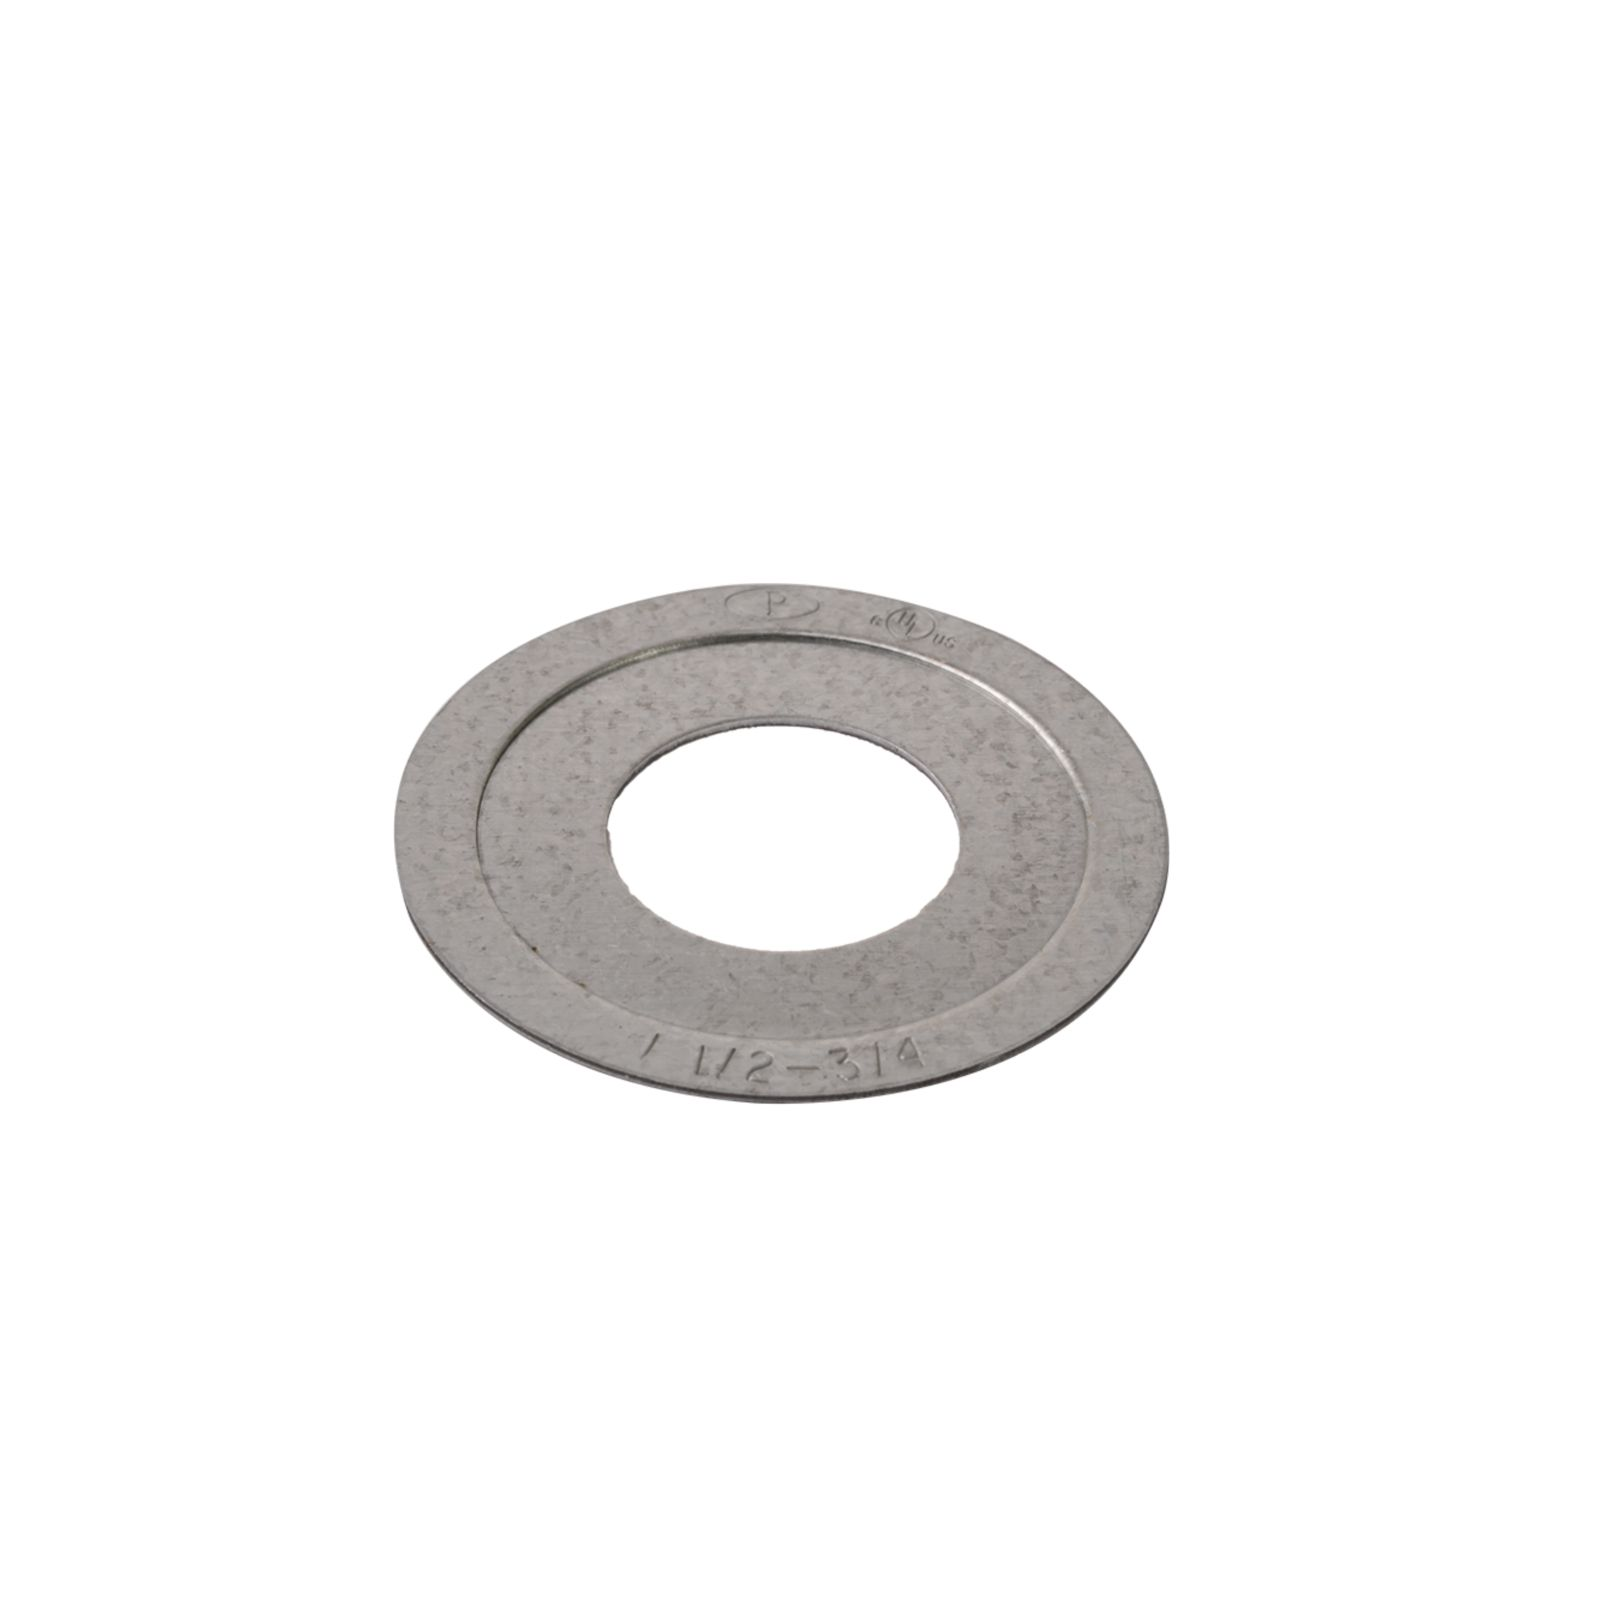 "DiversiTech PI914 - Reducing Washer, 1-1/2"" to 3/4"""